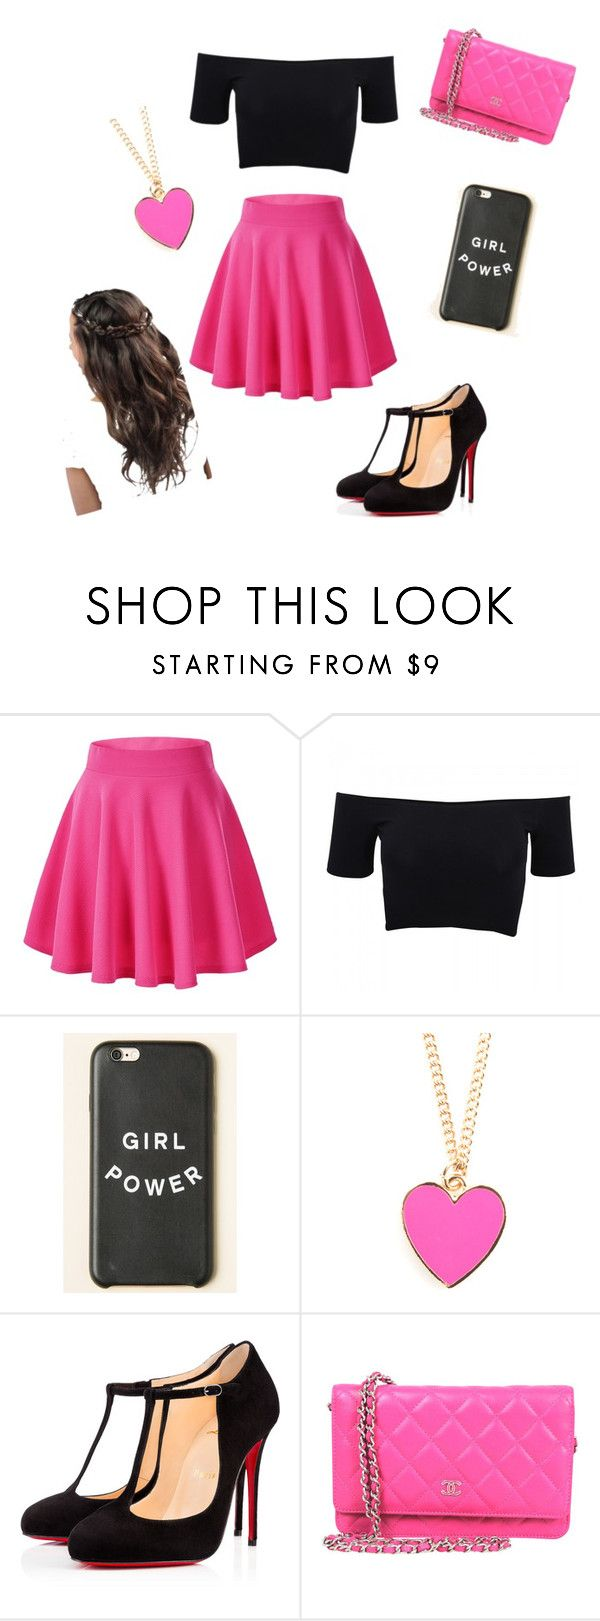 """Outings"" by lidage on Polyvore featuring American Apparel, Christian Louboutin, Pink and pretty"